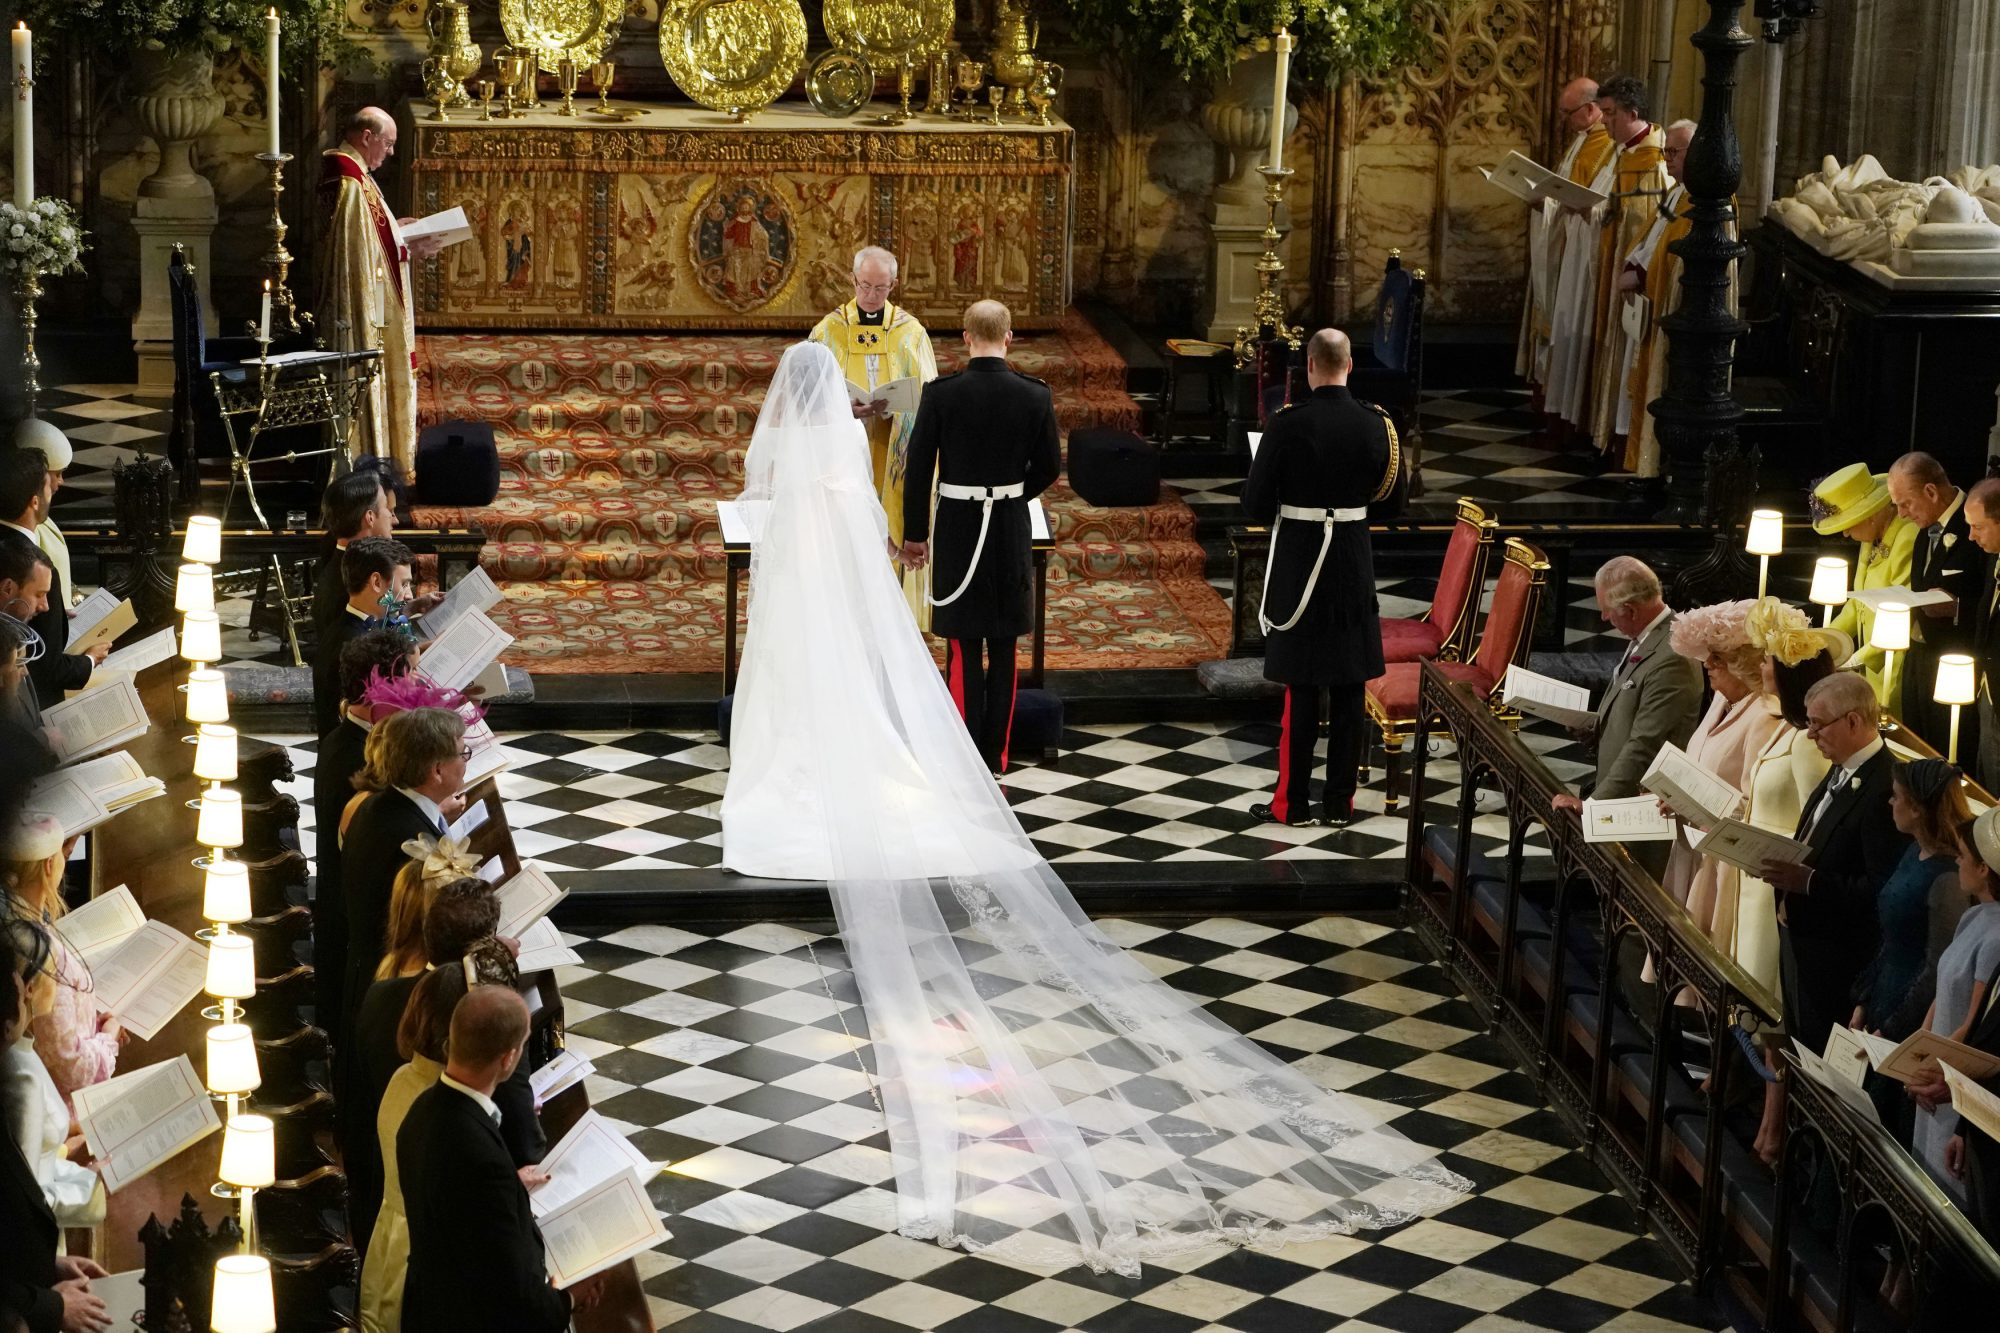 Prince Harry and Meghan Markle ceremony dress train royal wedding 2018